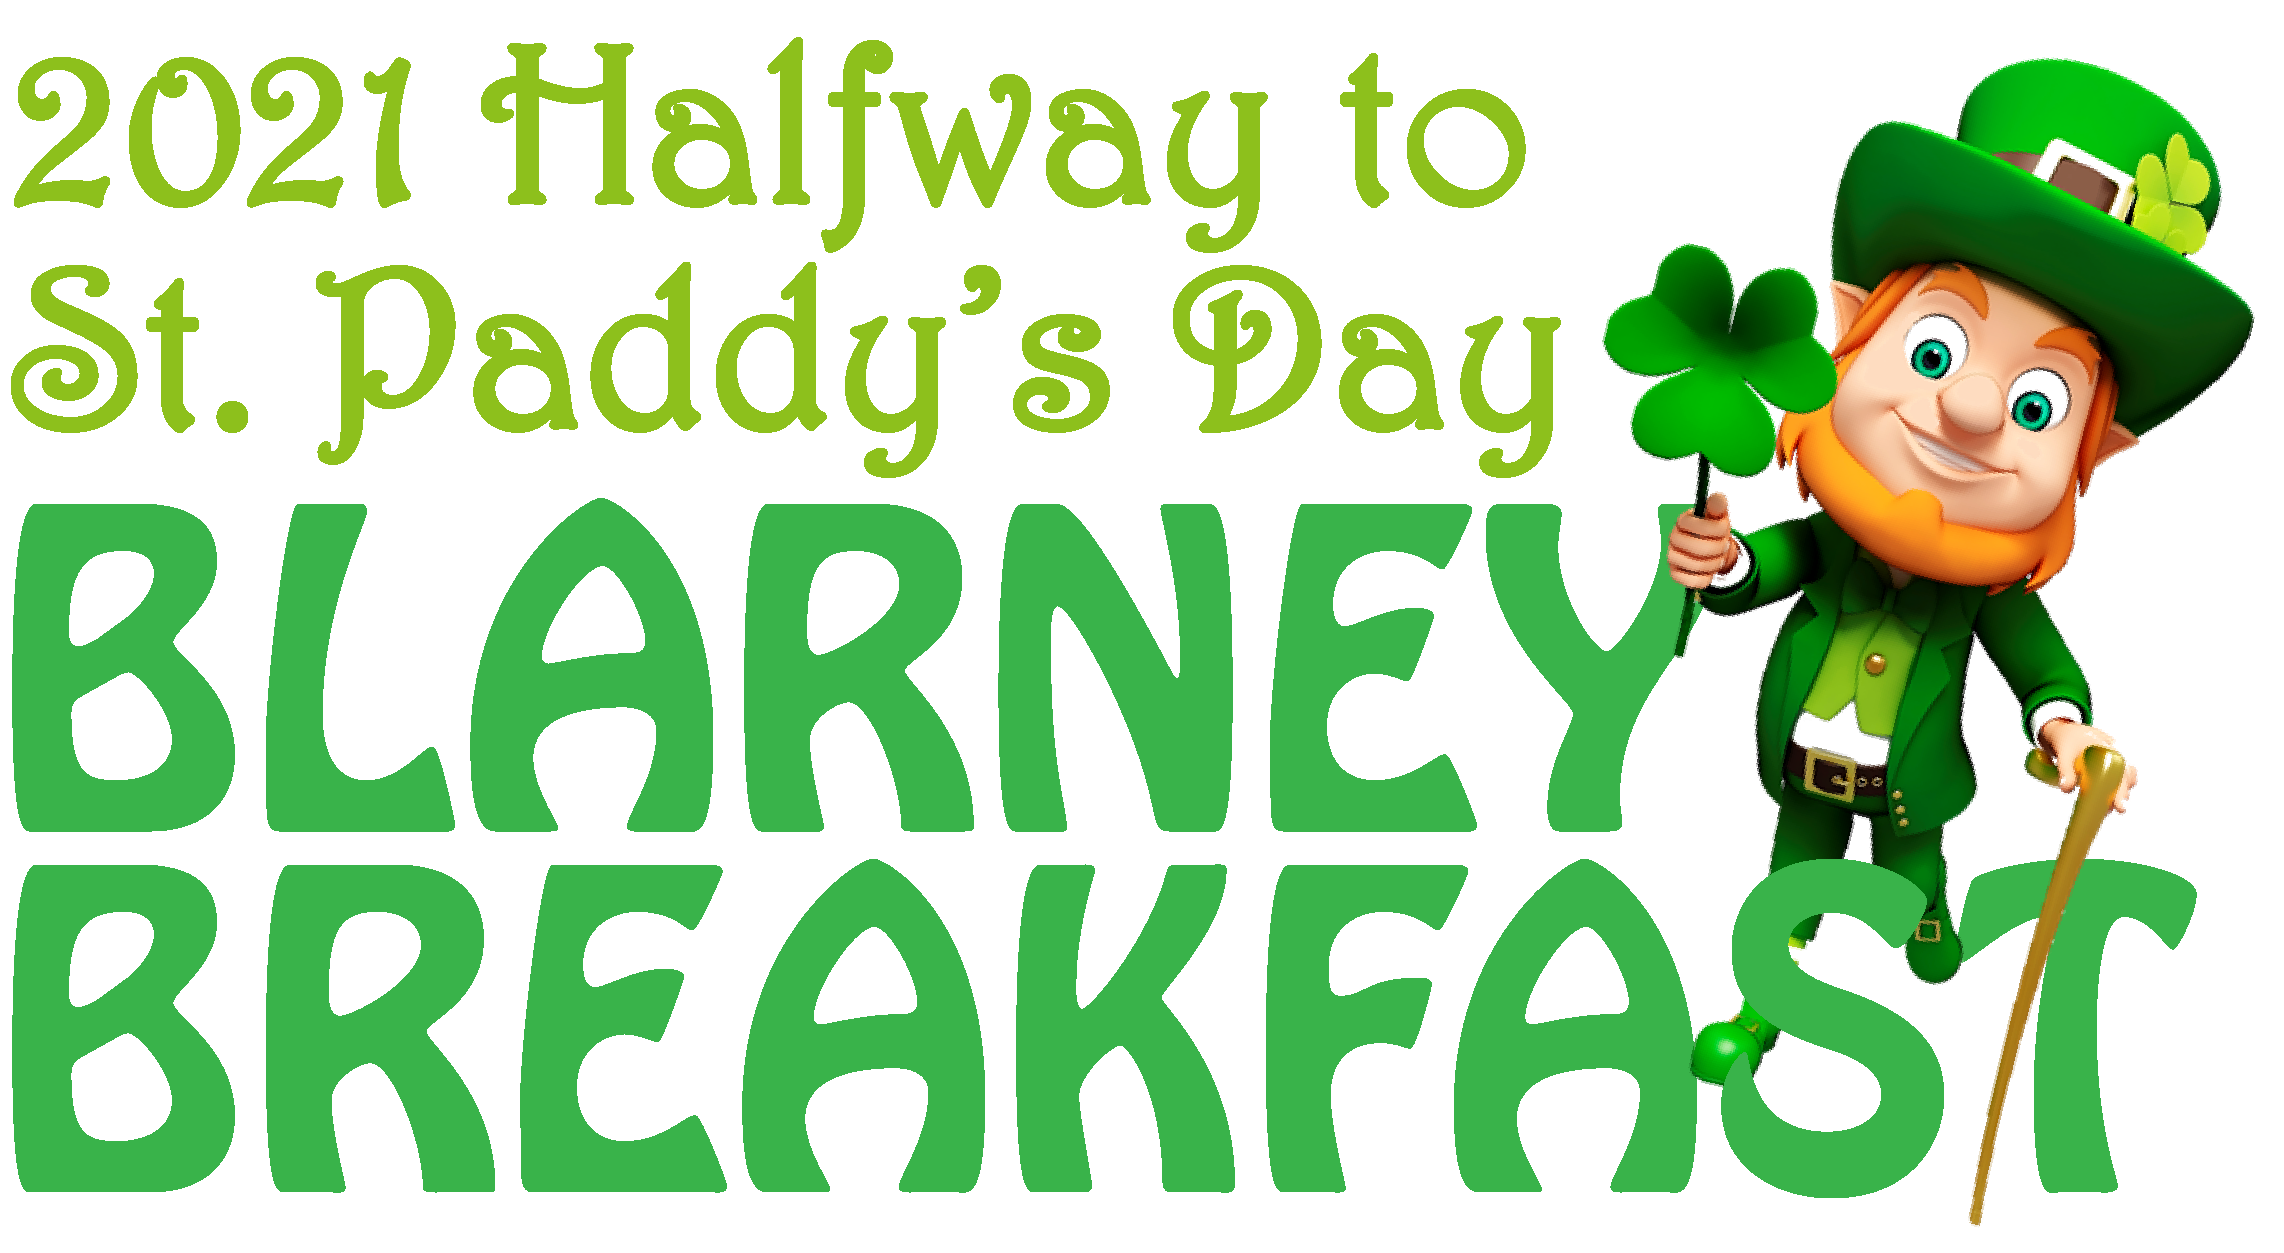 Topeka is Celebrating Halfway to St. Paddy's Day